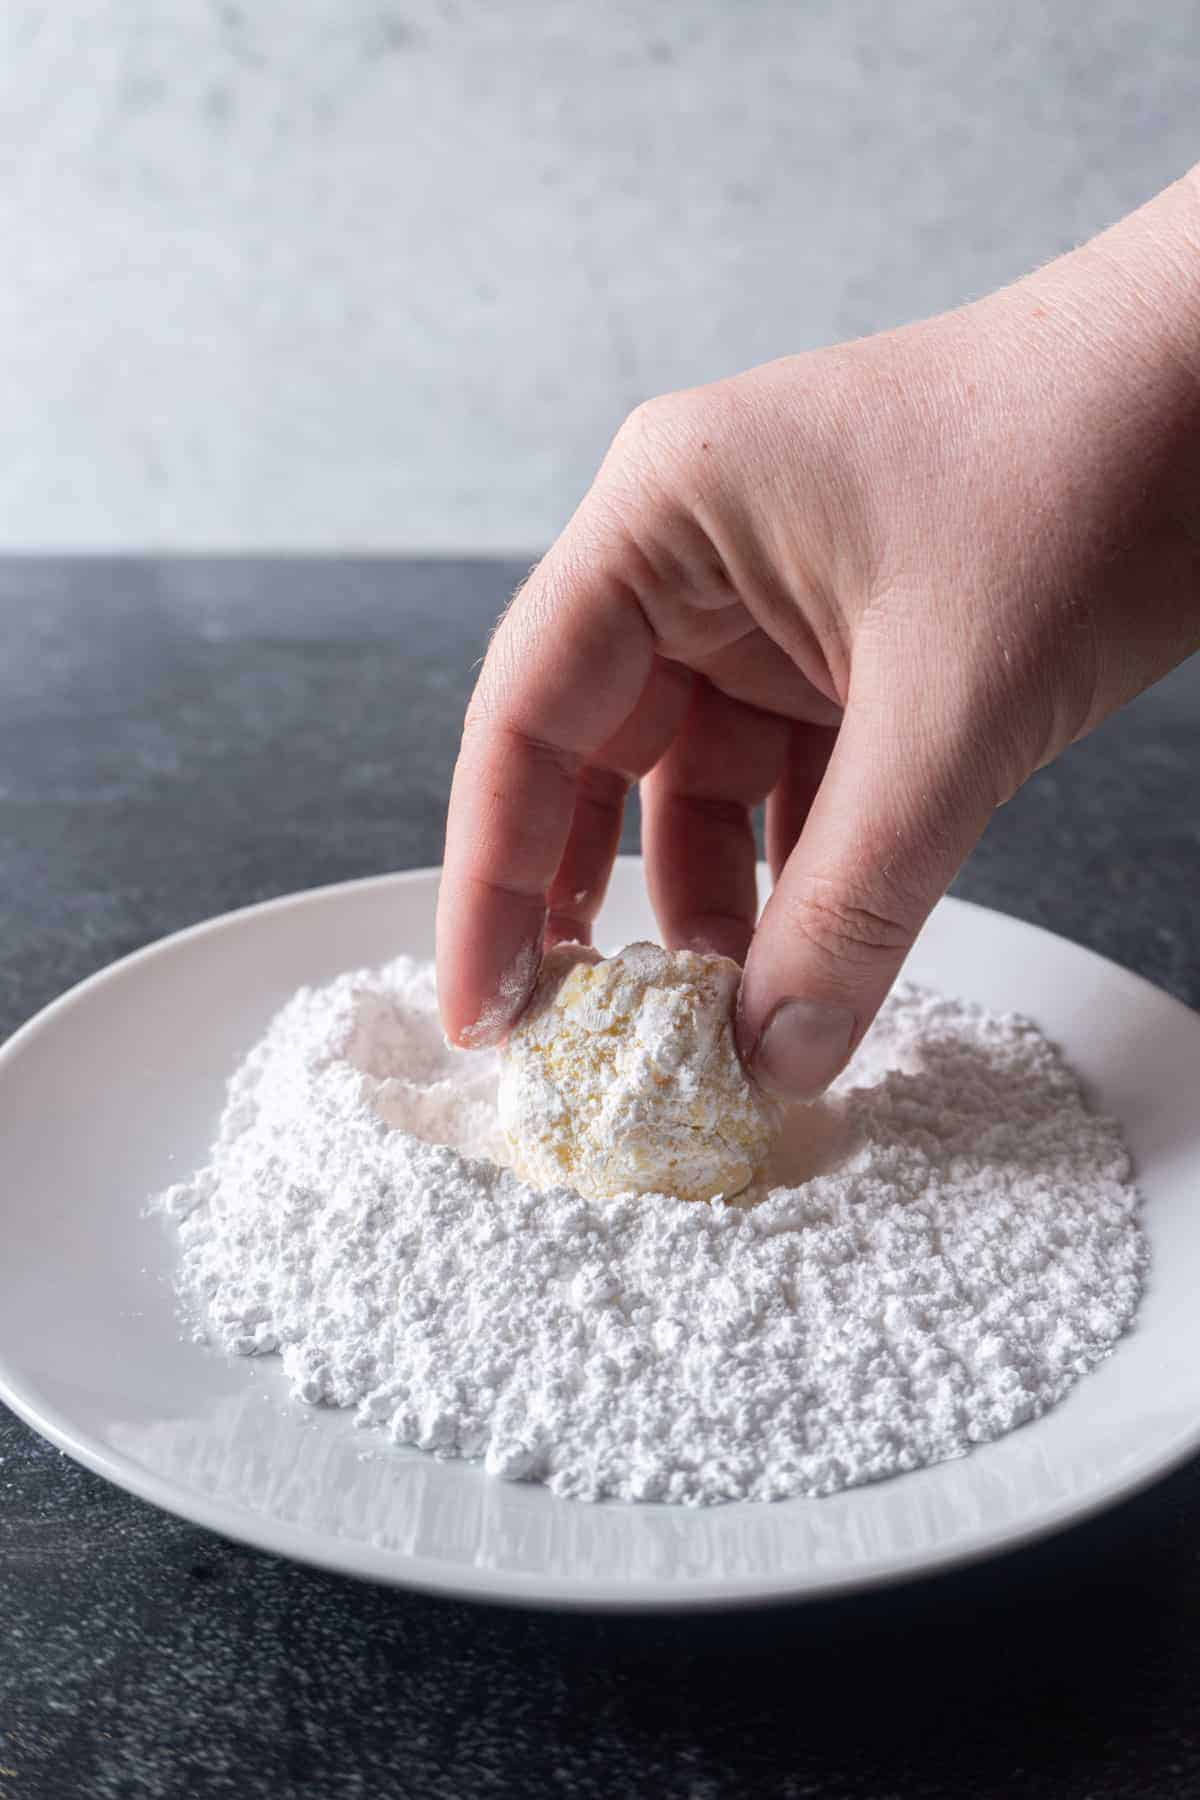 Cookie dough being rolled in powdered sugar